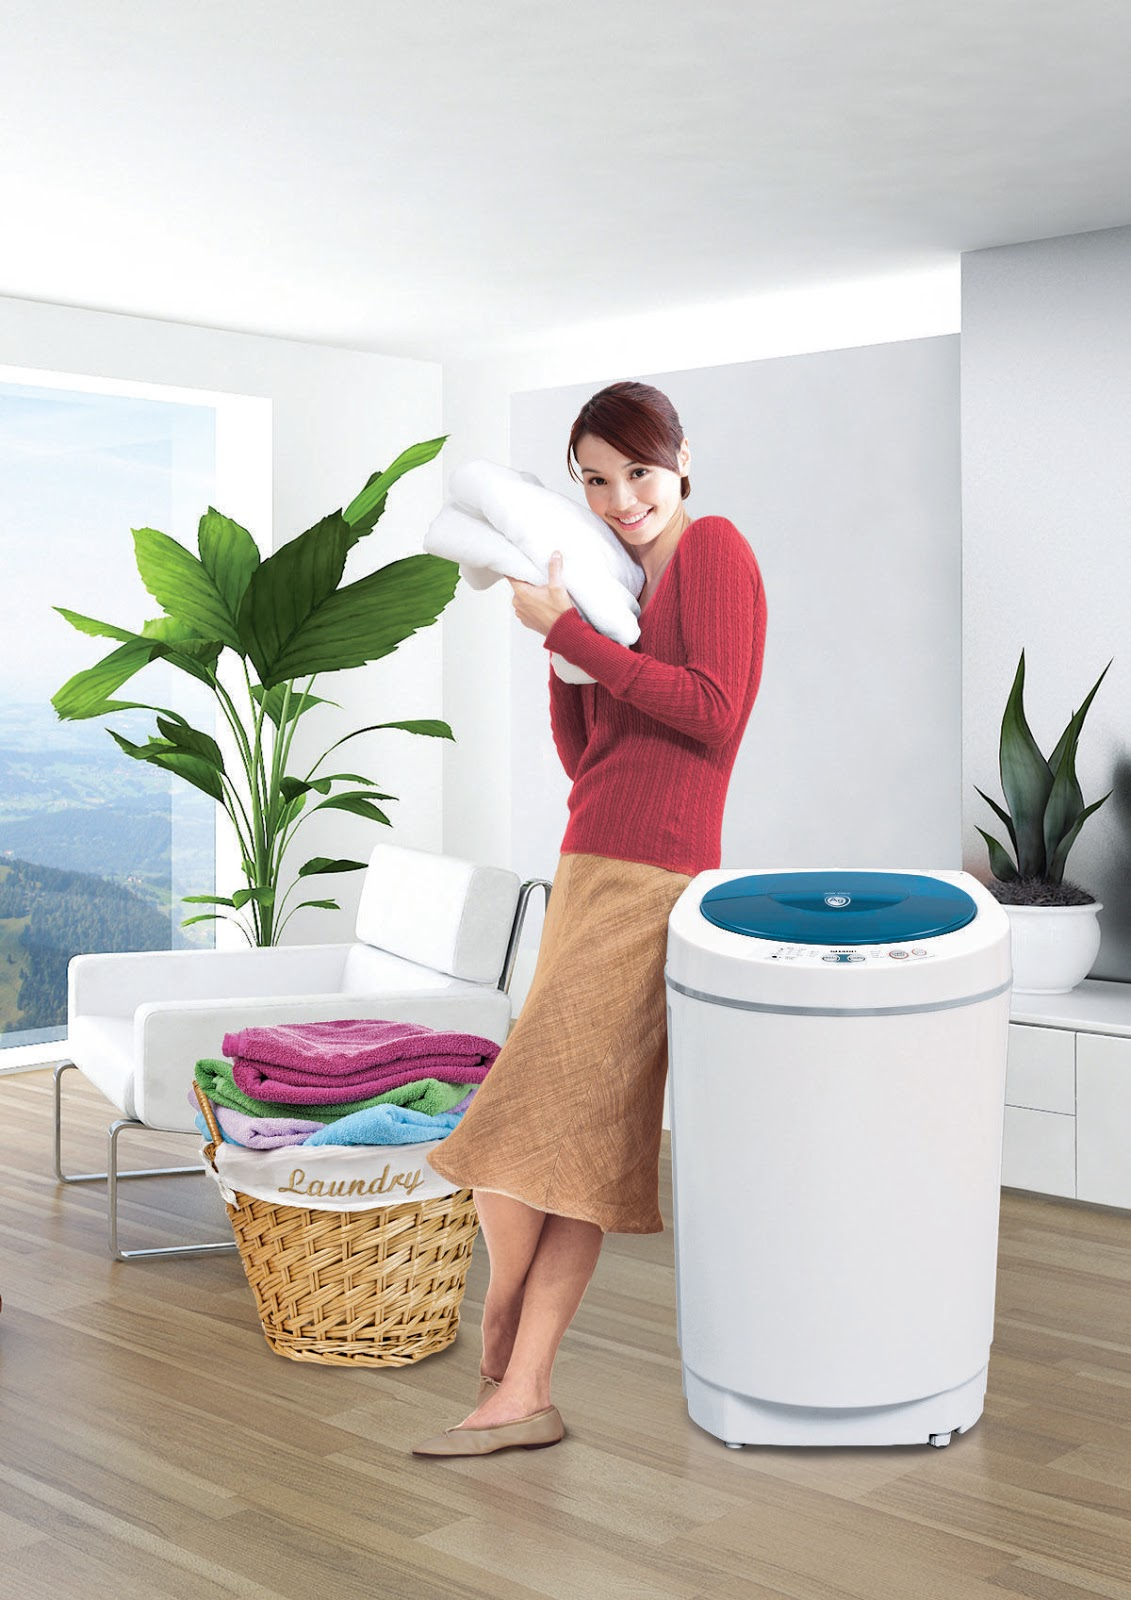 Sharp Fully Automatic Washing Machine